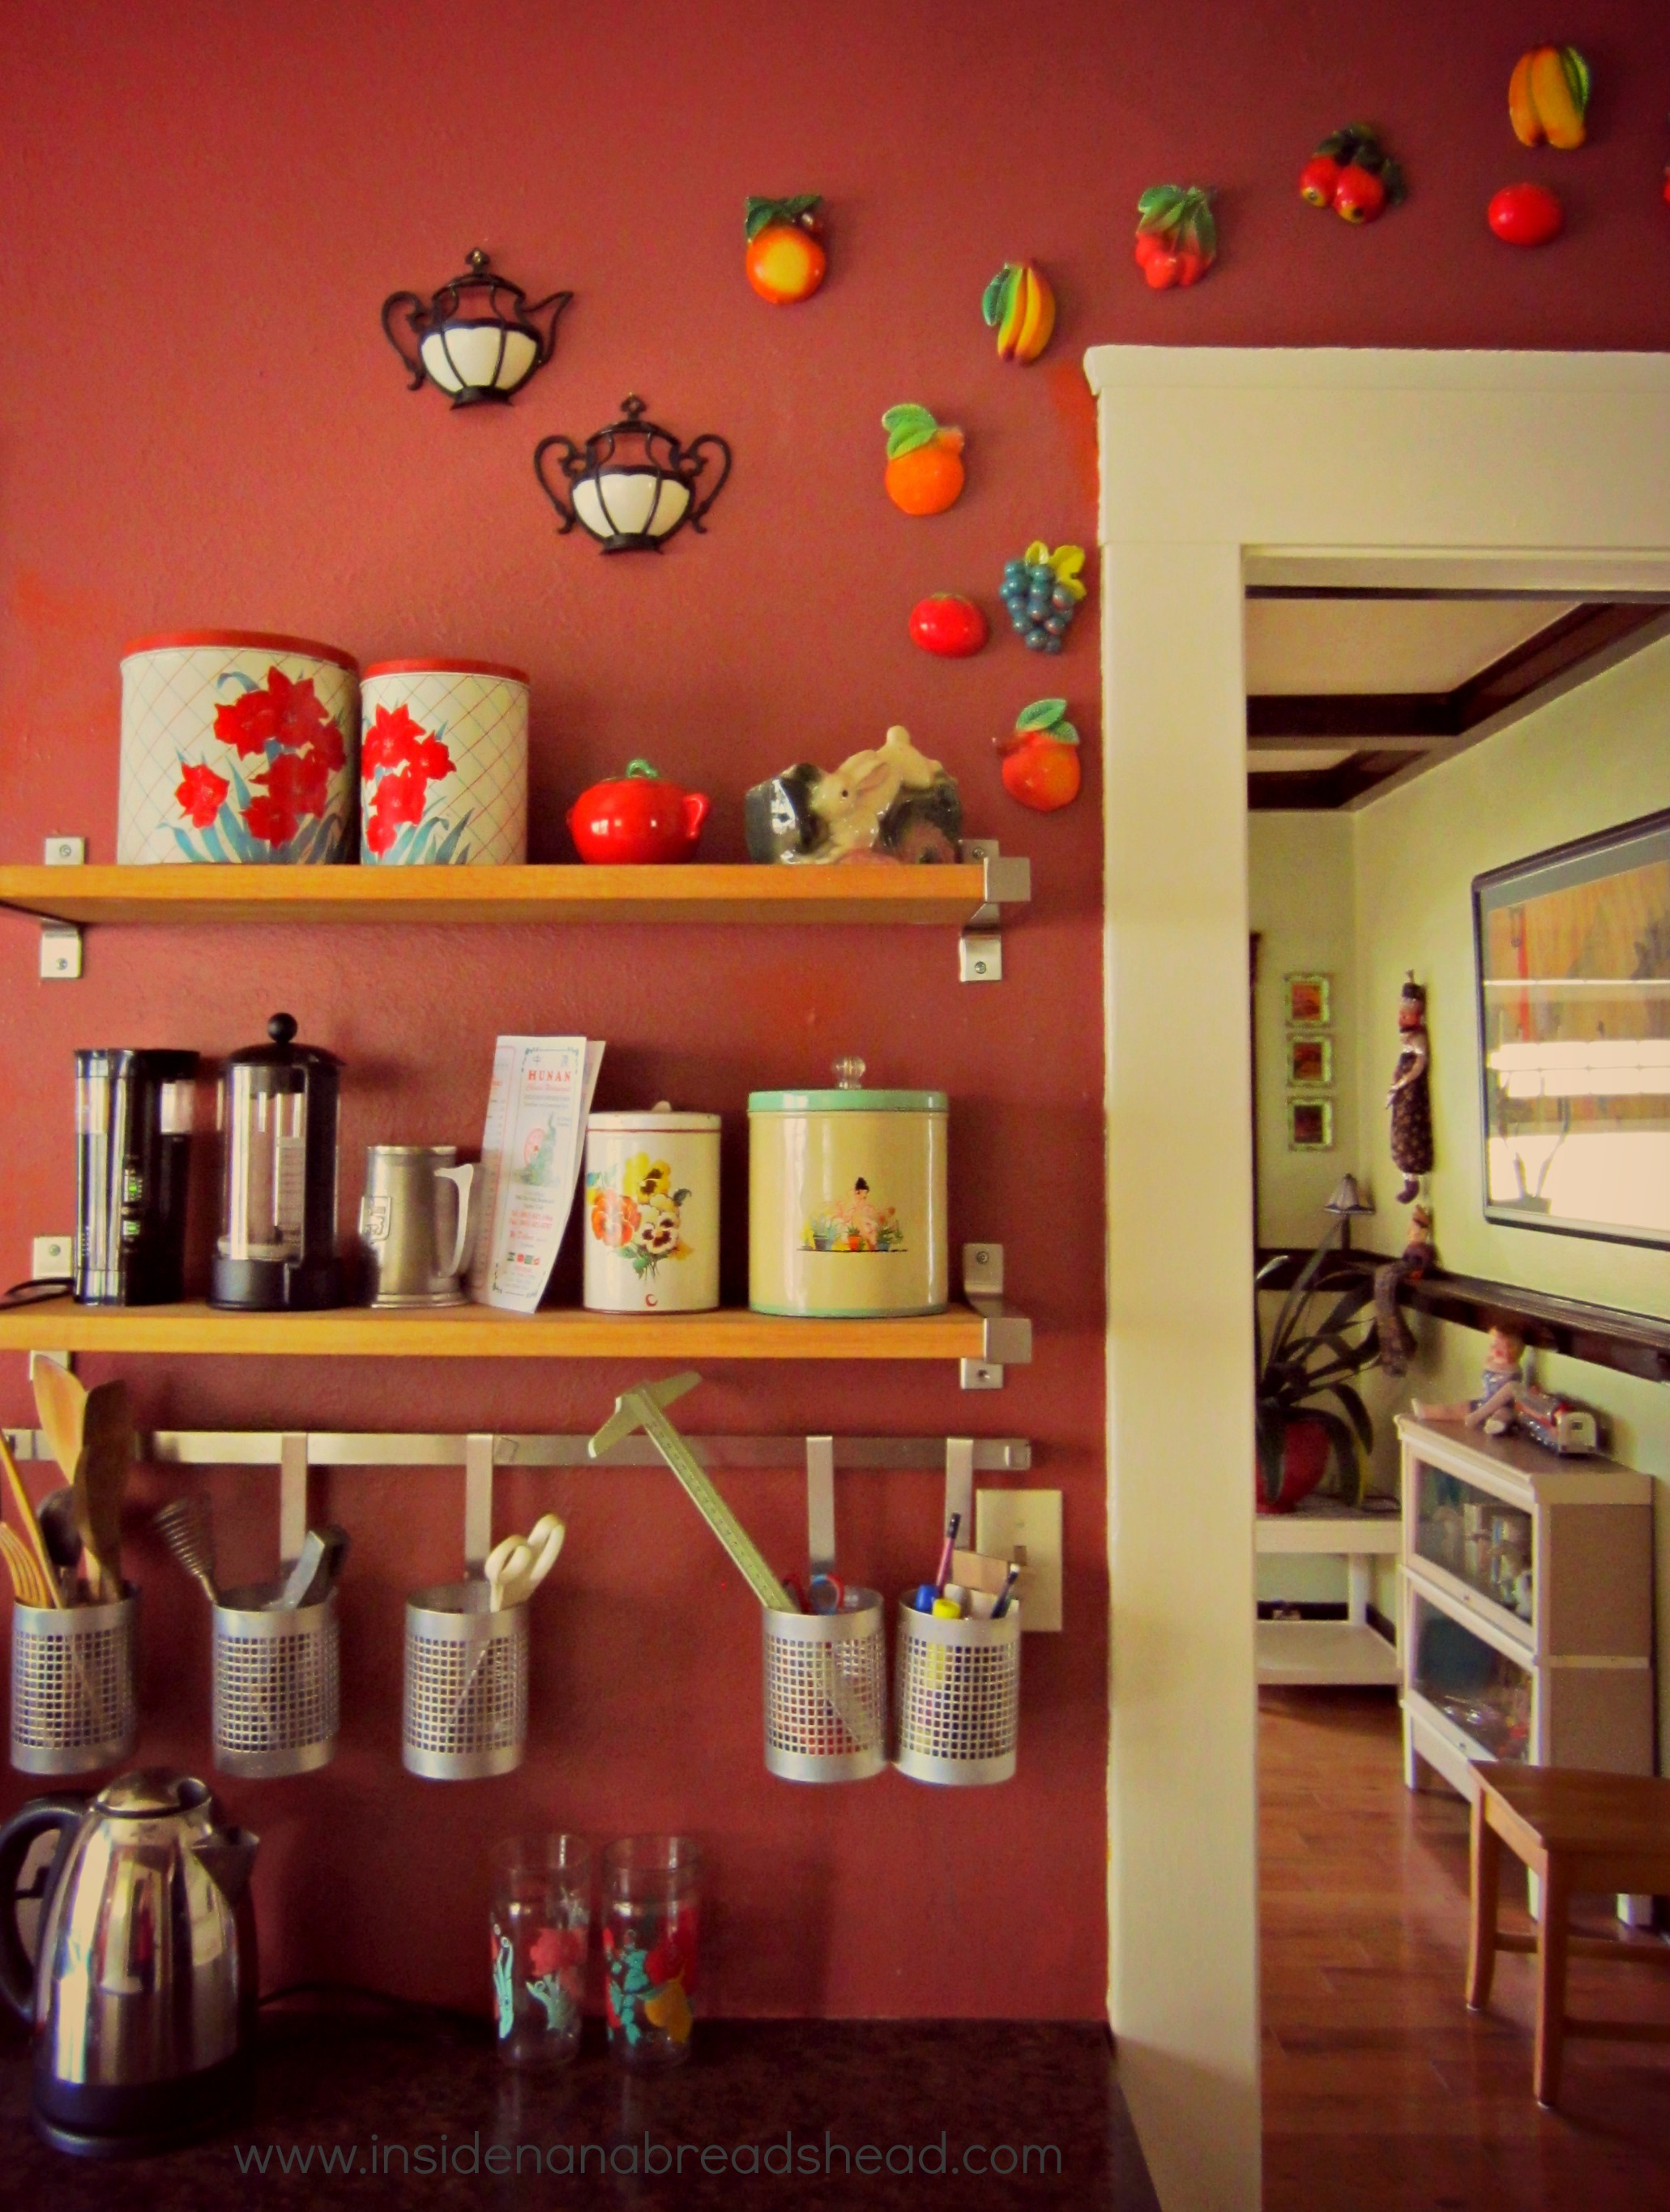 Travel with small children inside nanabread 39 s head for Small childrens kitchen